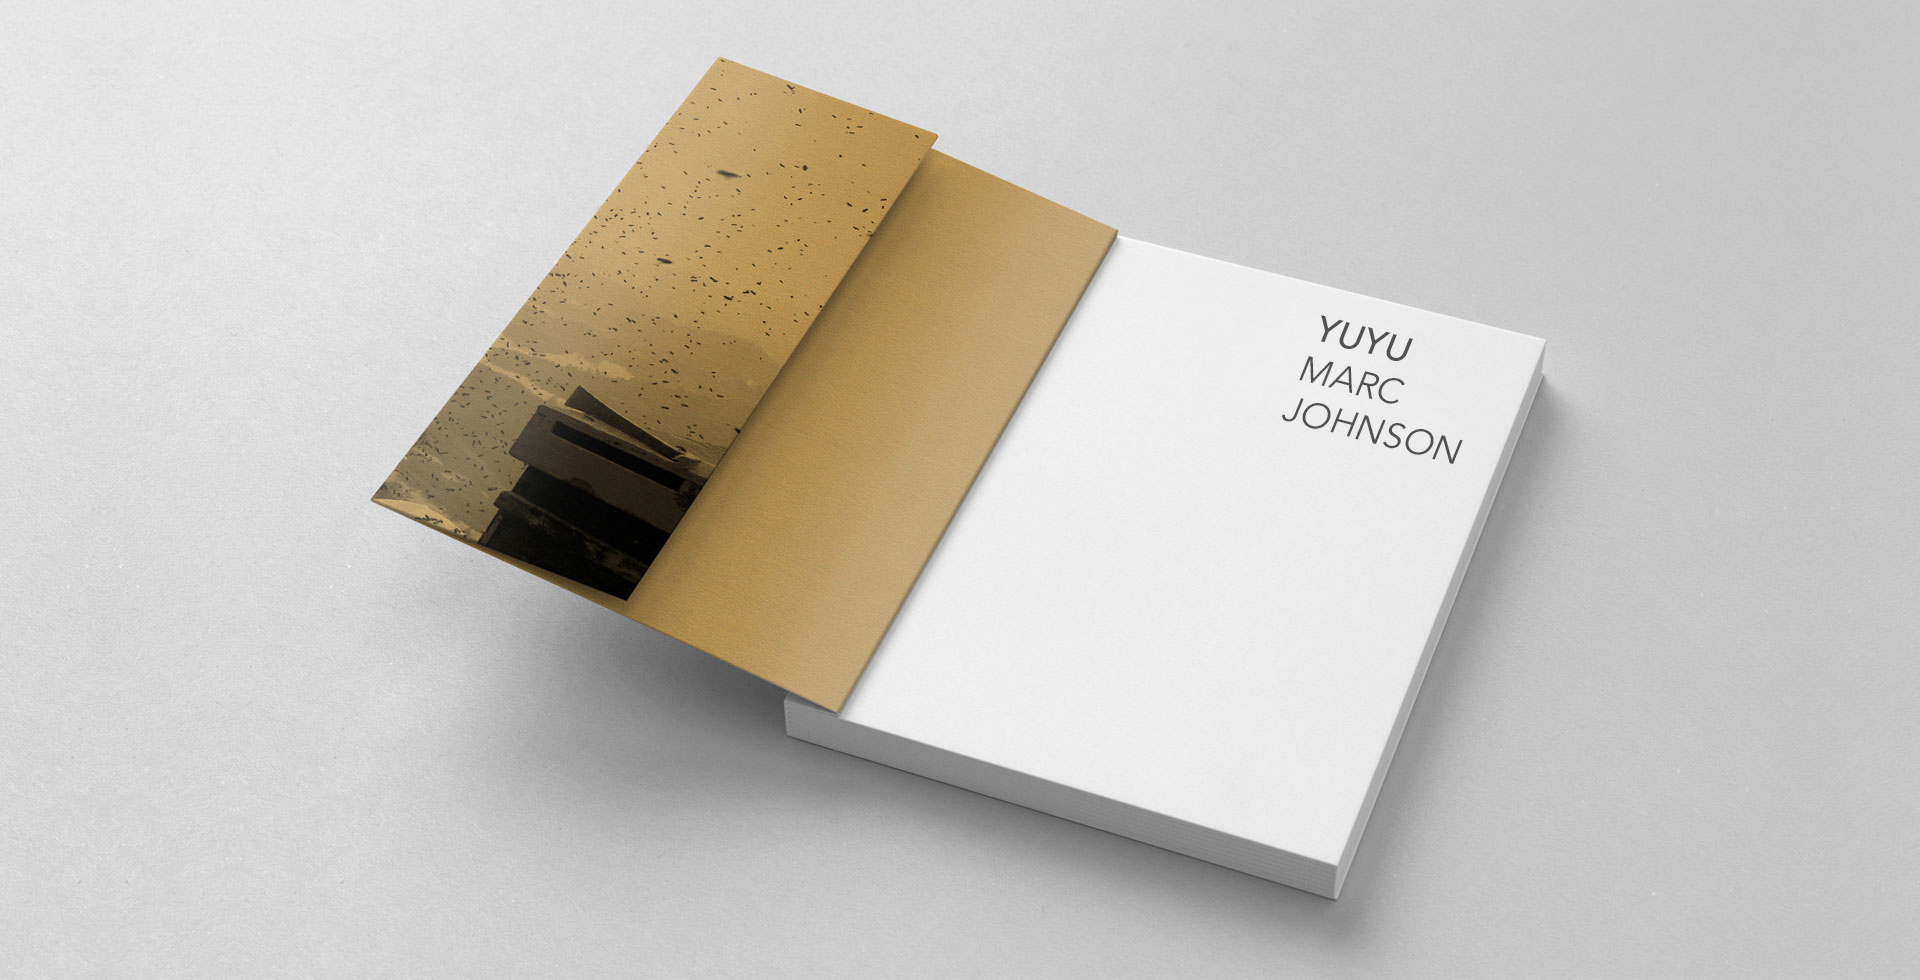 Publication: YúYú artist book with a special color profile engaging with biodiversity conservation in the Anthropocene era.